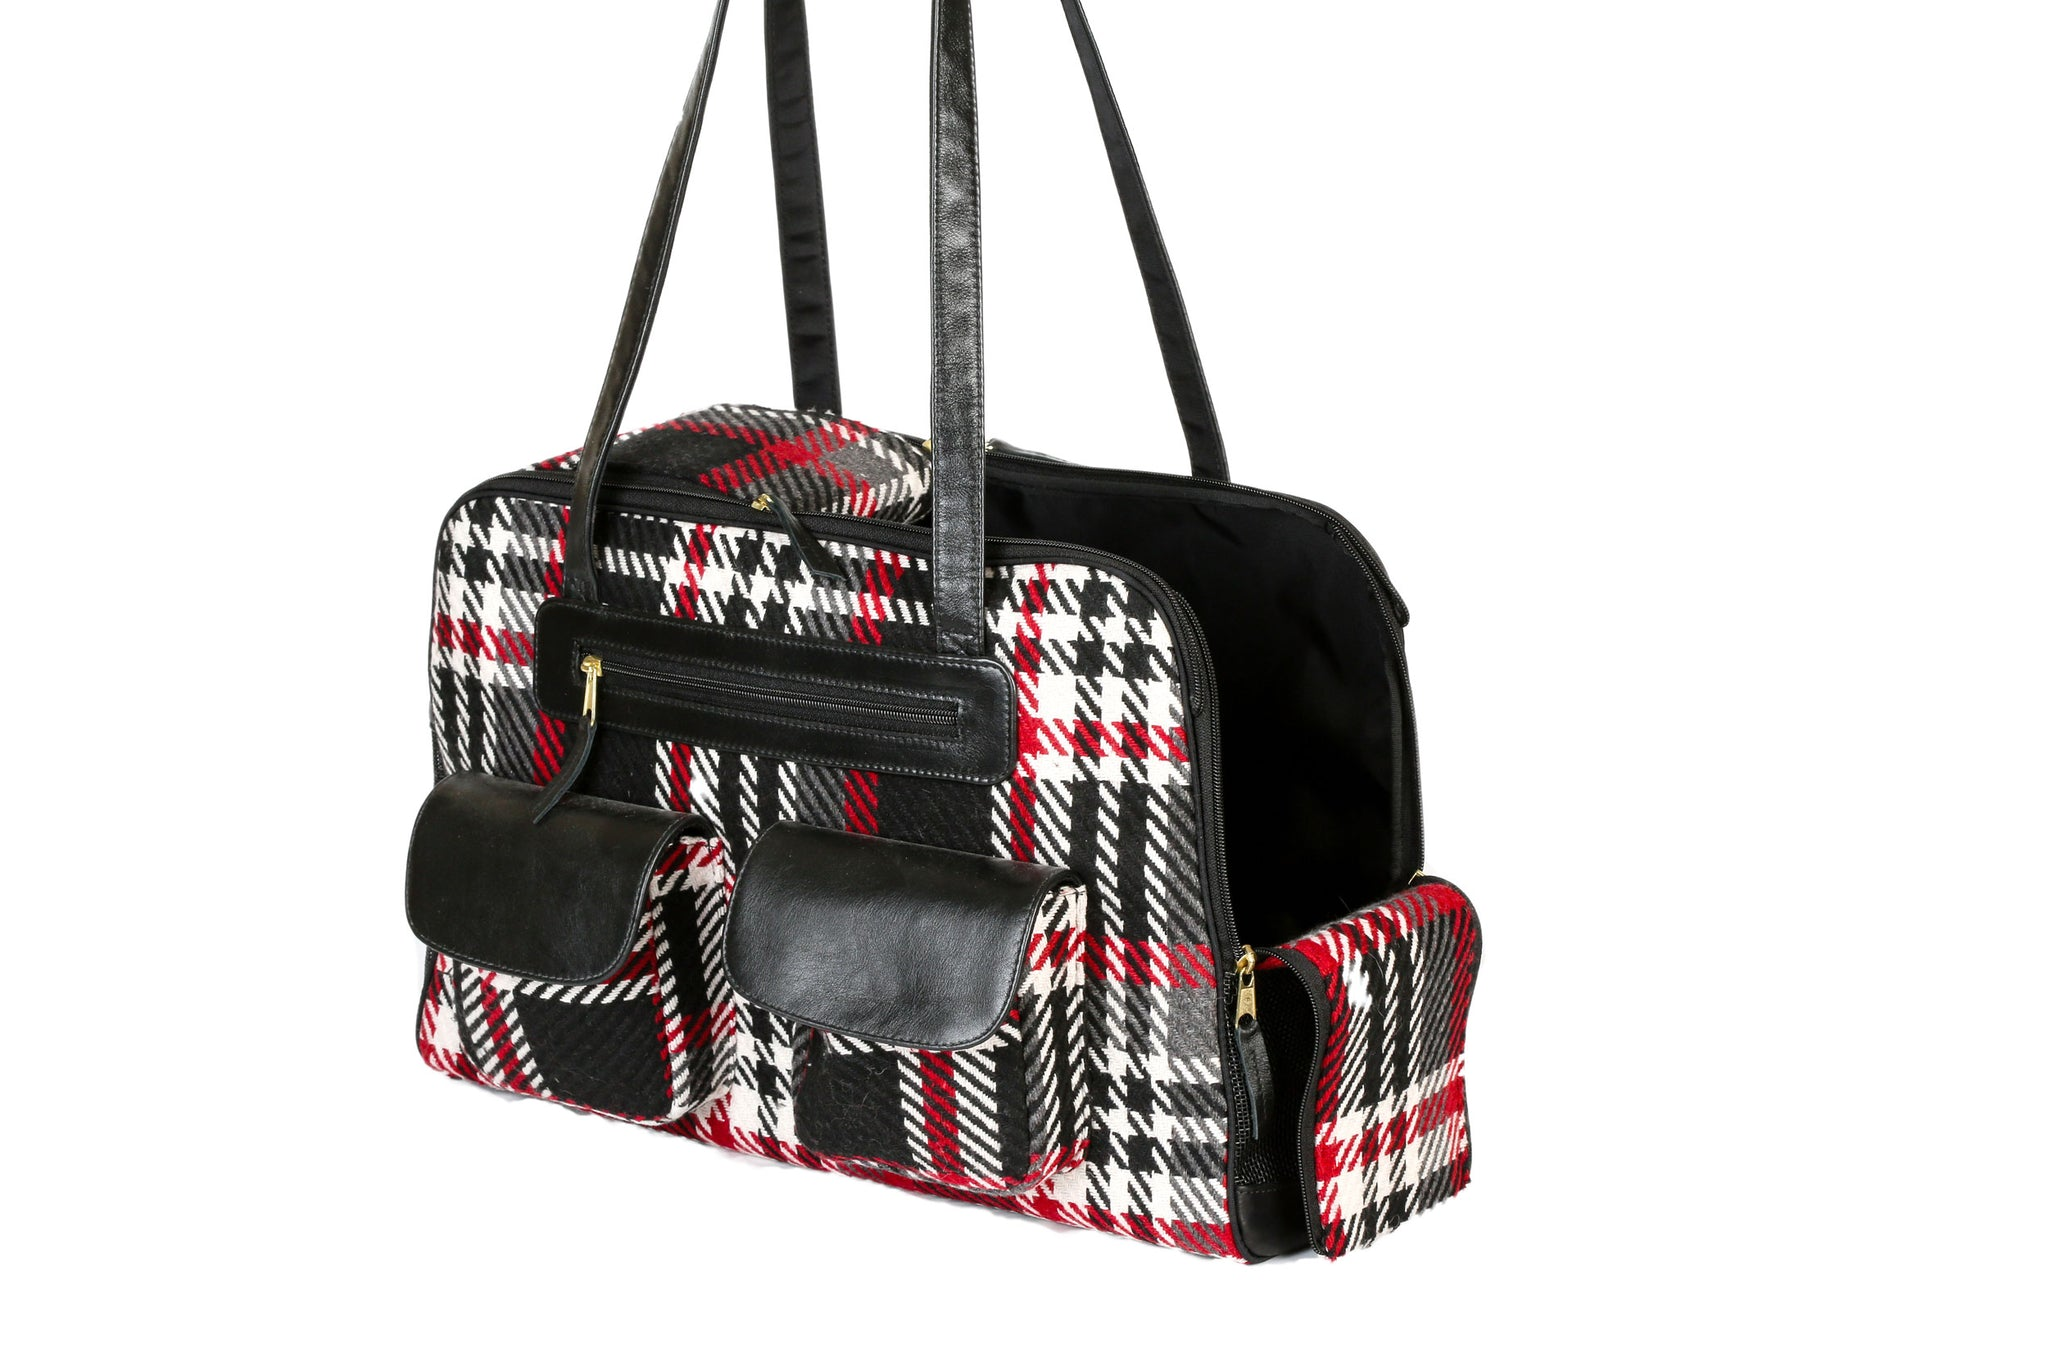 Dog Carrier - Black and Red Wool Plaid